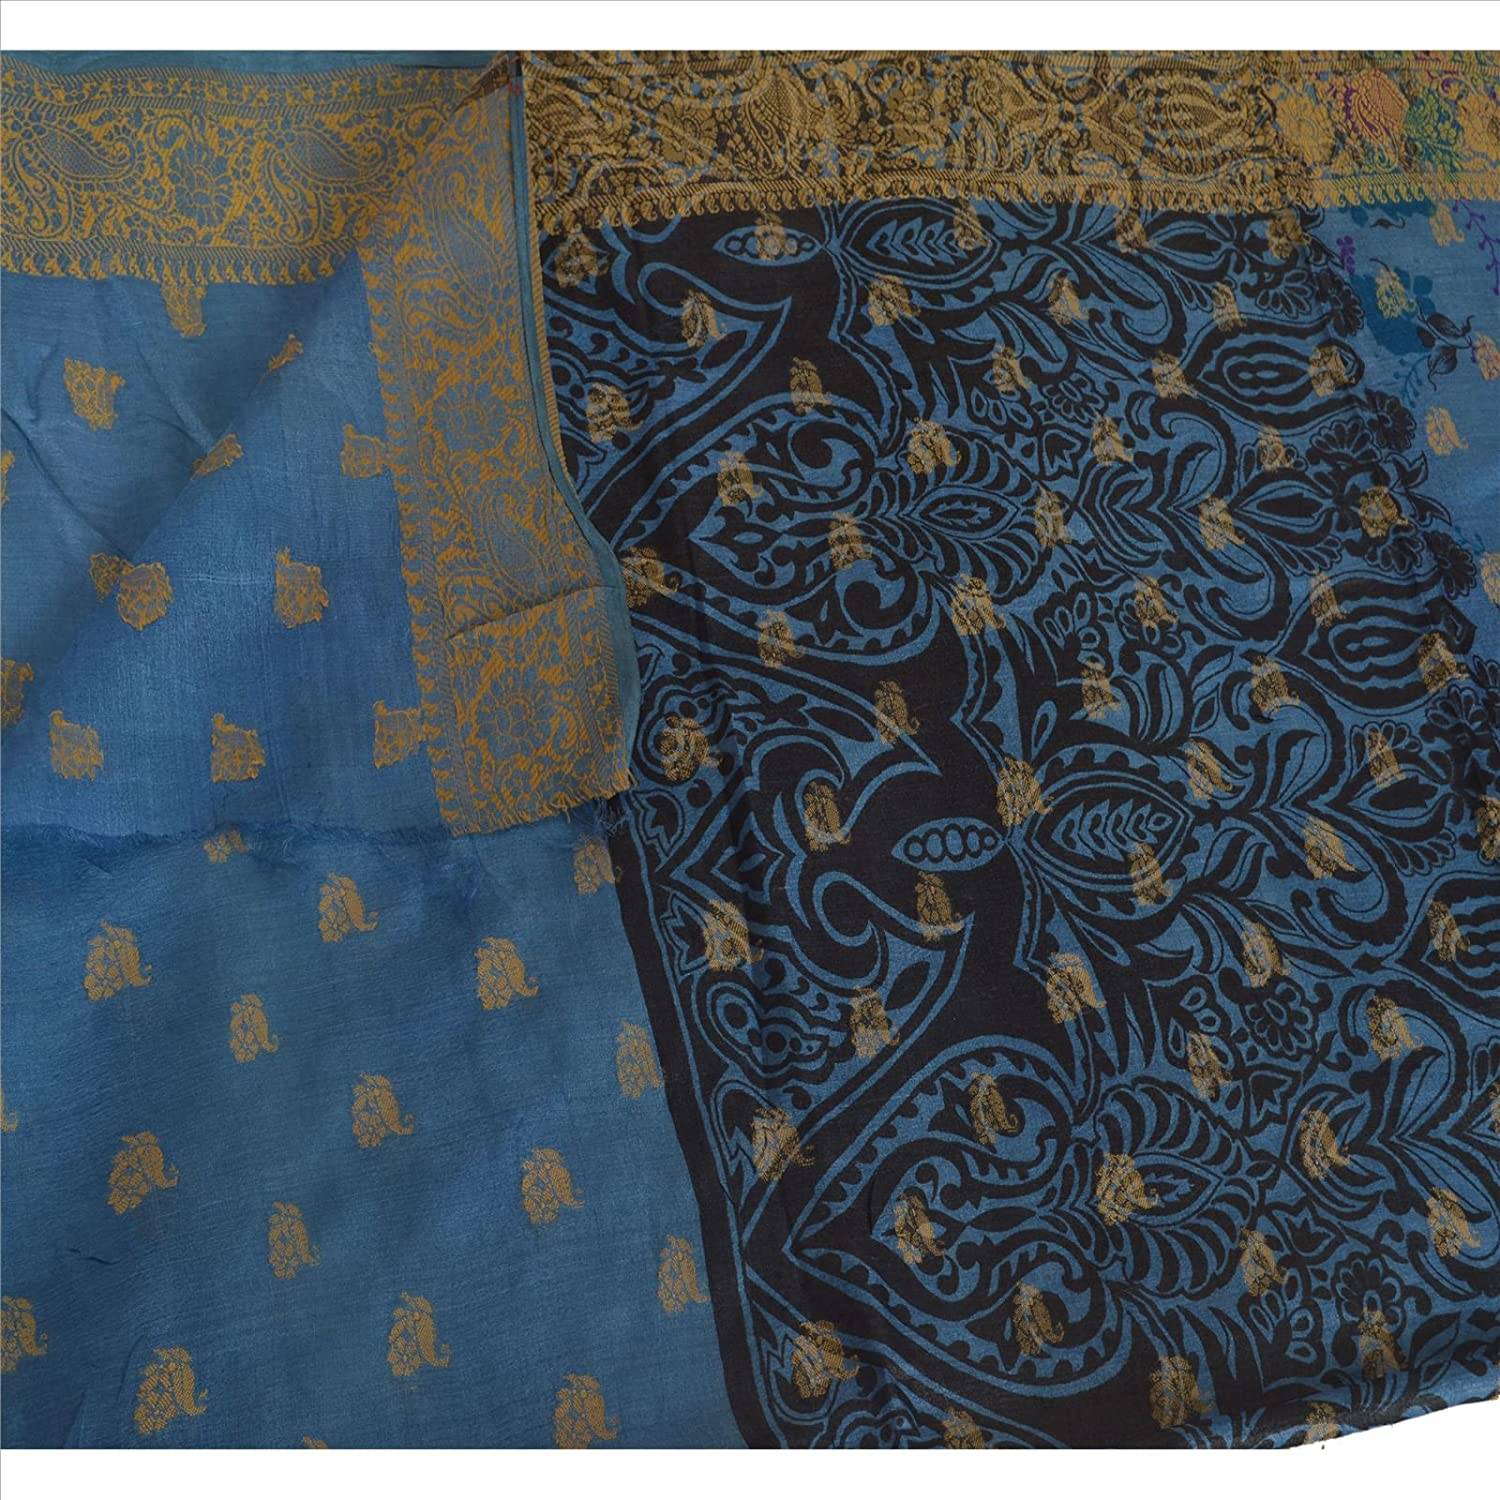 100% Pure Tassar Silk New Long Stole Dupatta Scarves Printed With Weaving Border